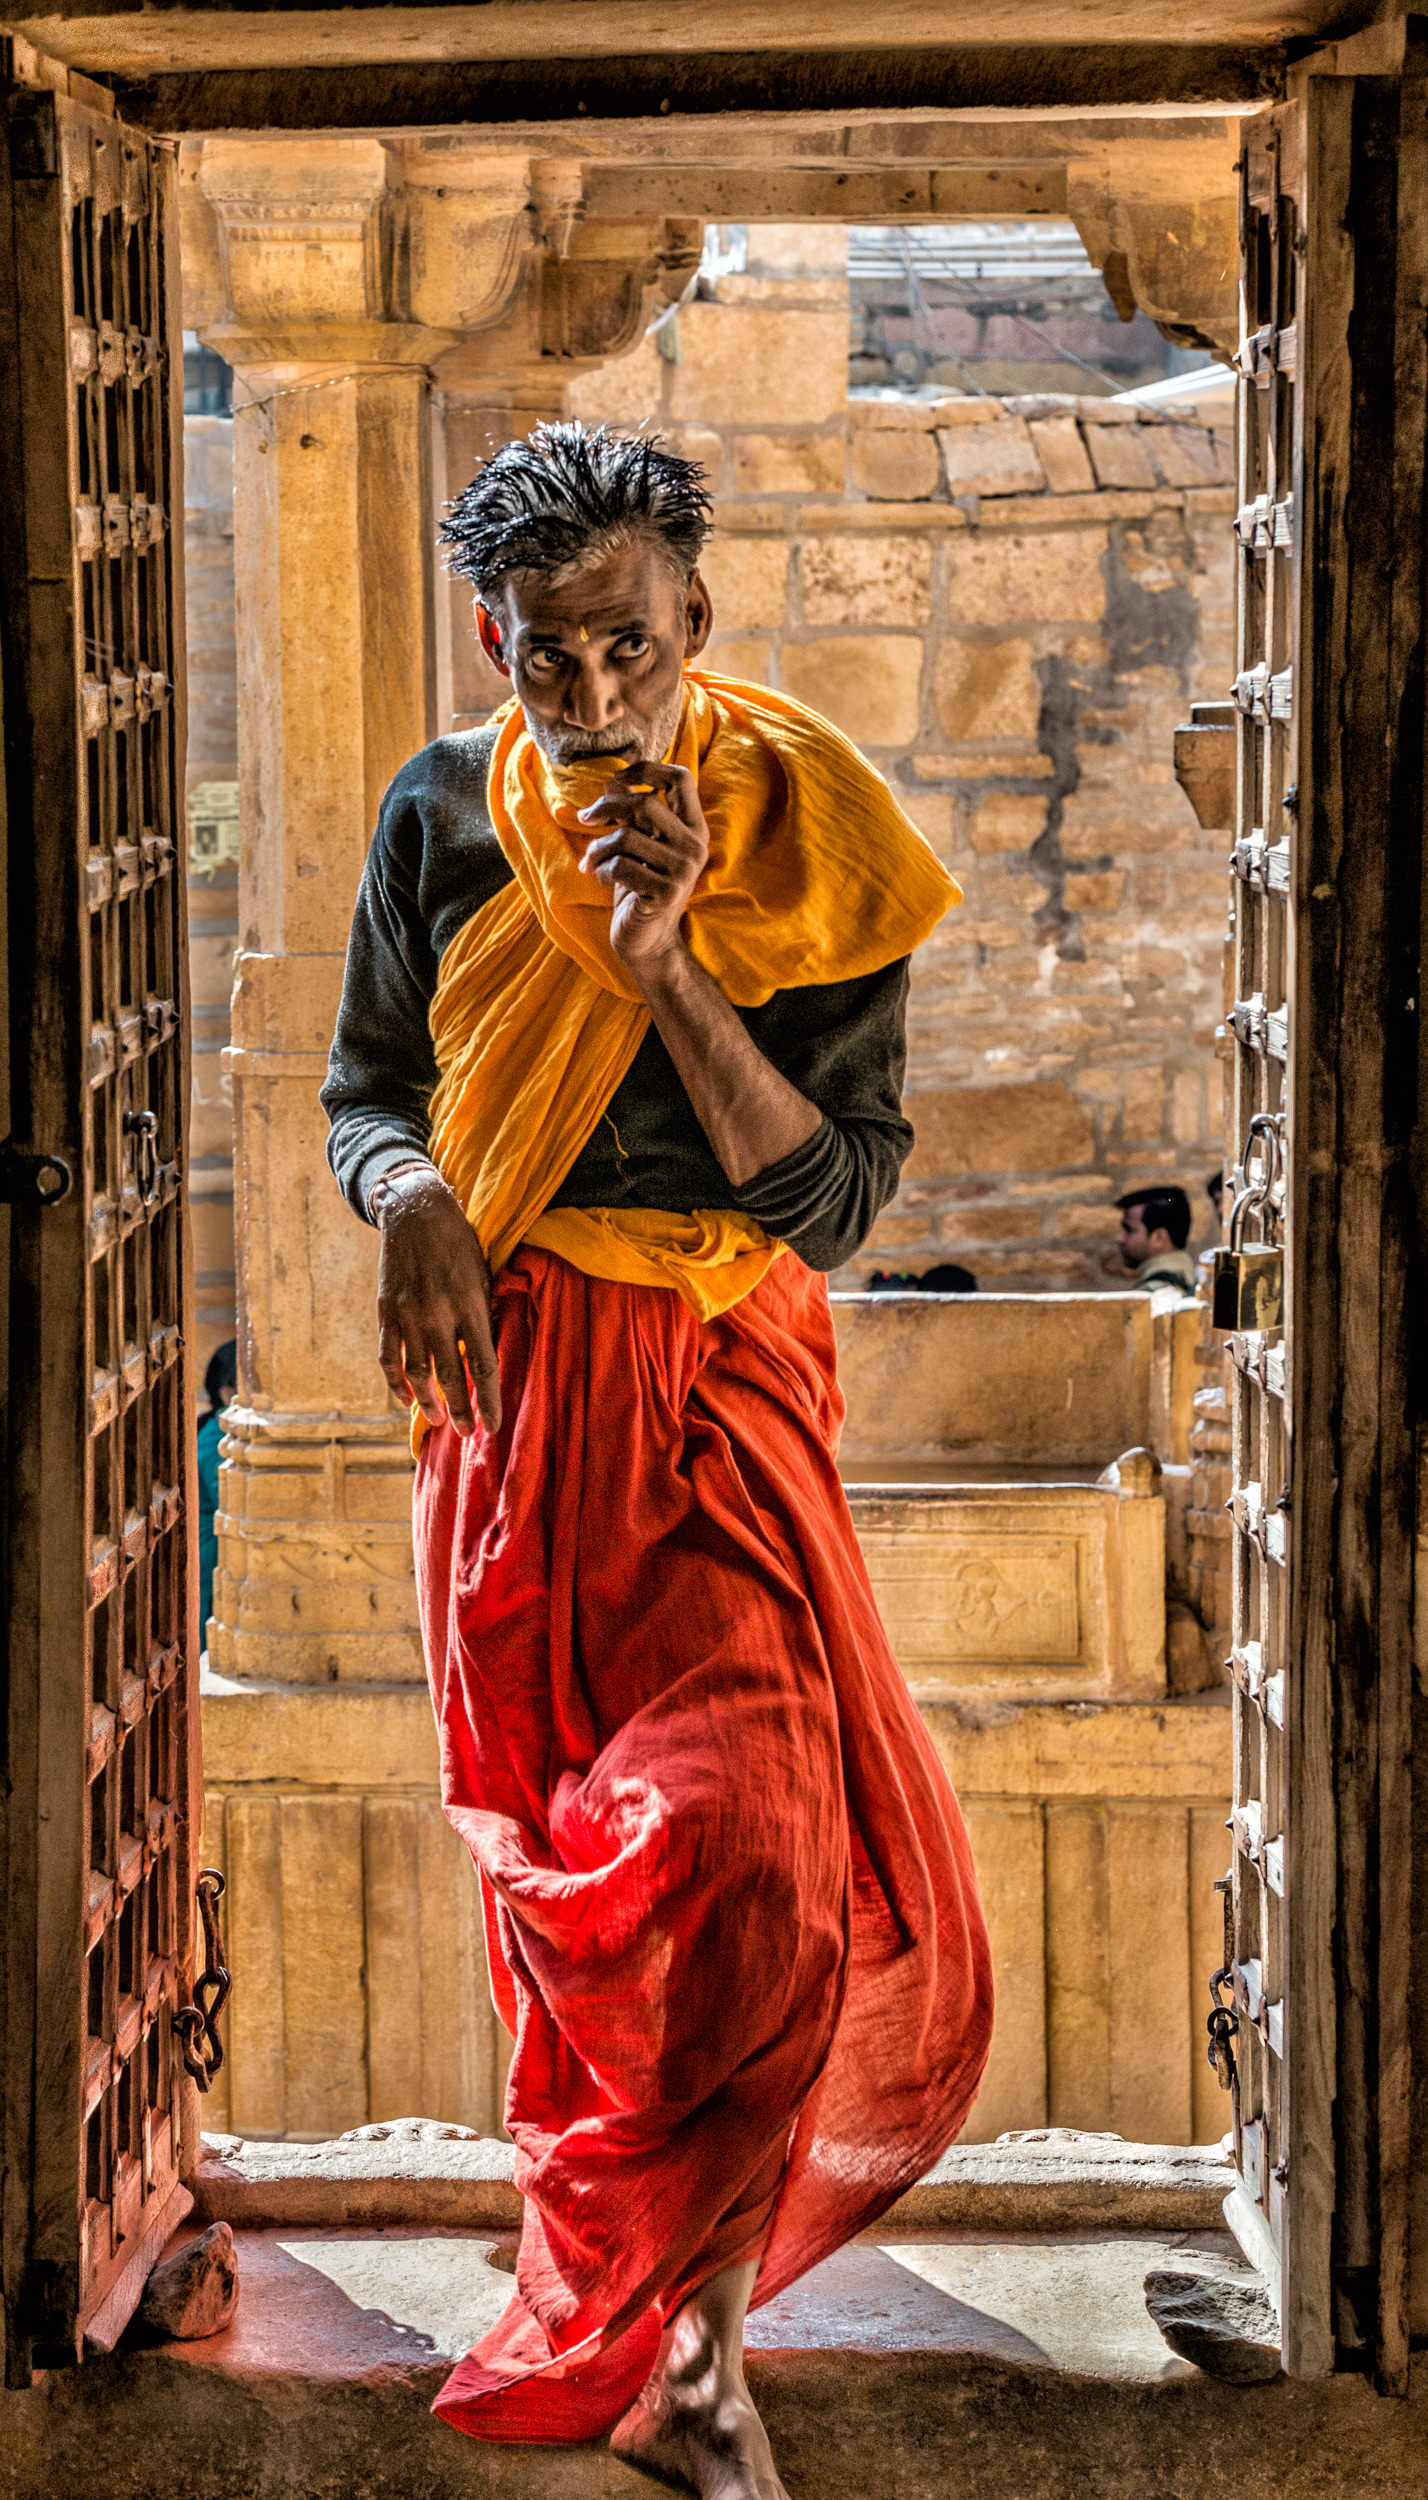 [2015 01 25] India 2015 Jaisalmer (NIKON D800) 2164-Edit.jpg